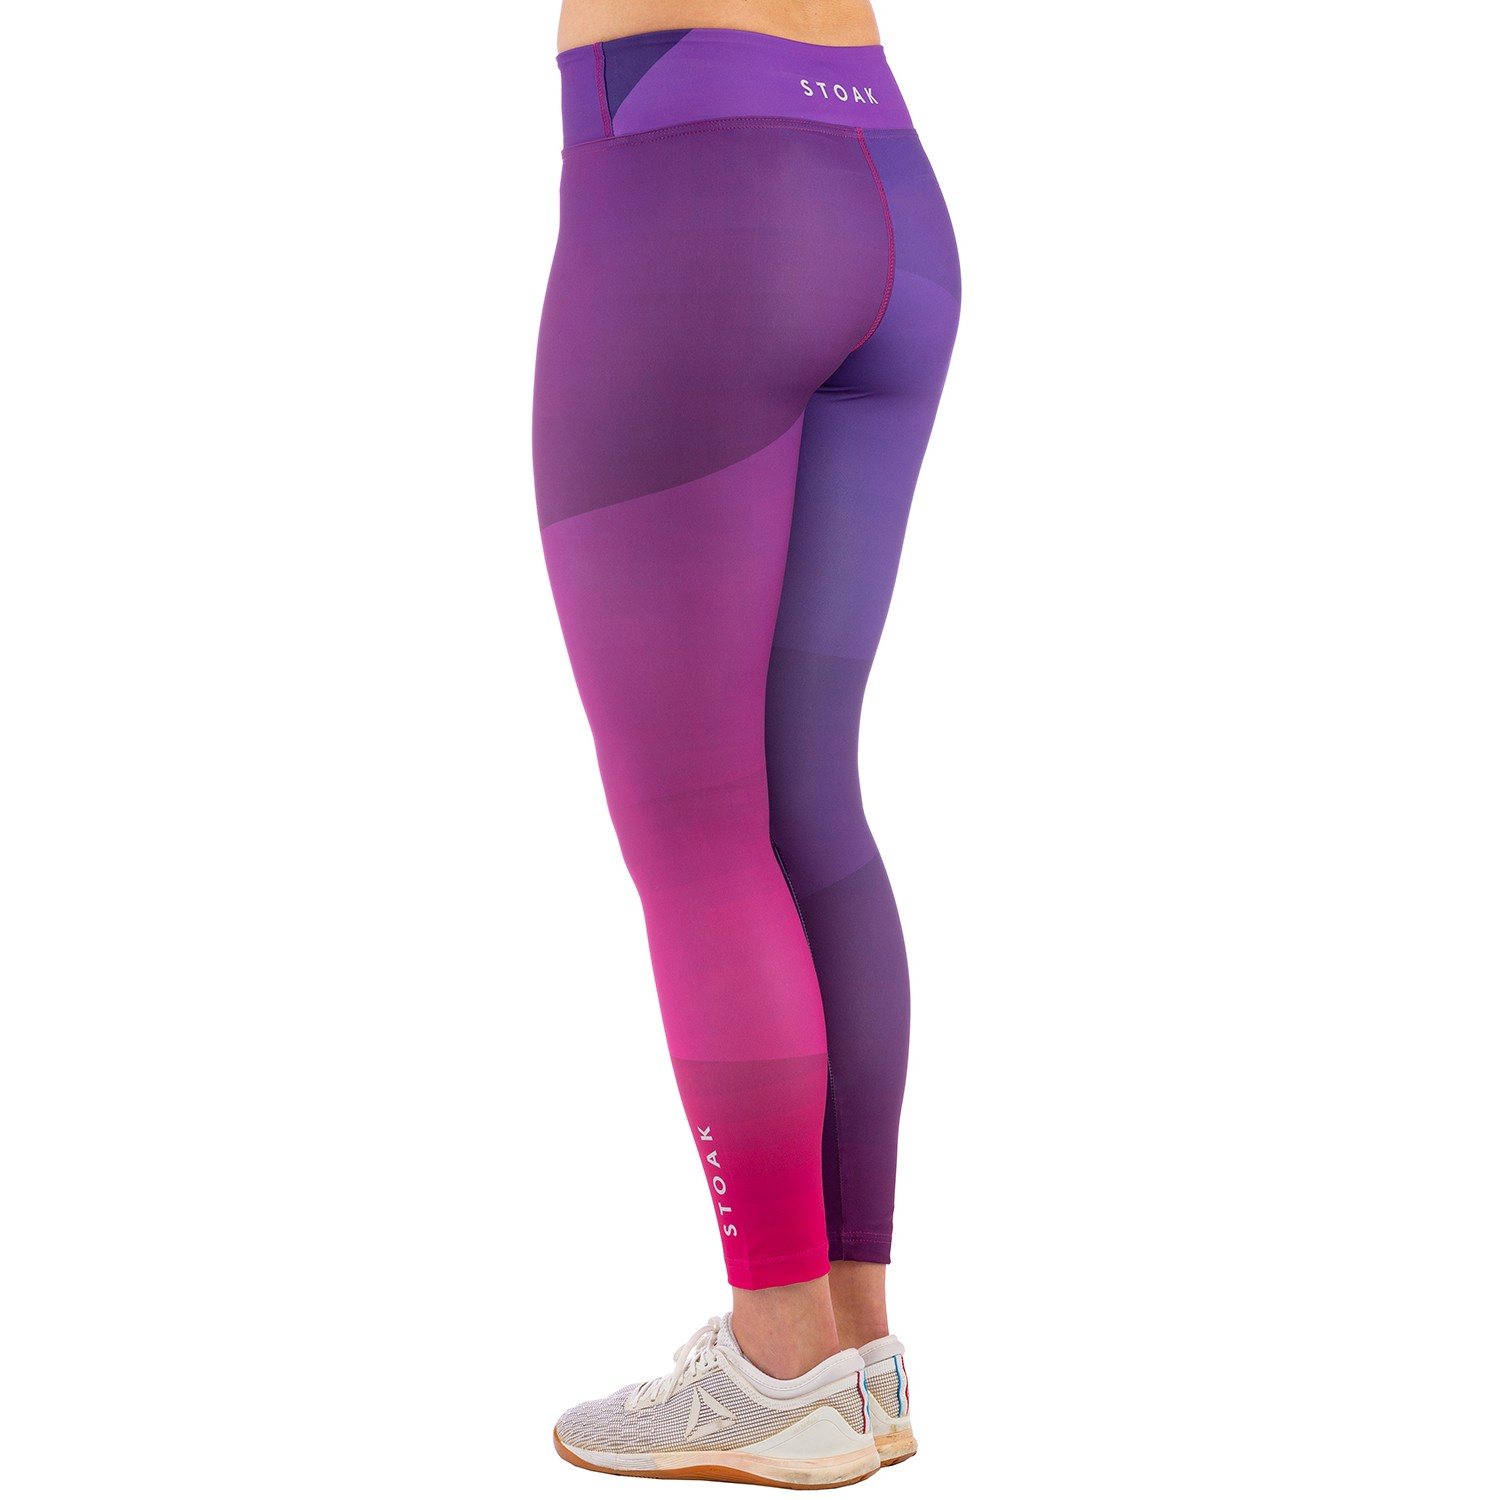 STOAK SUNSET Performance Leggings